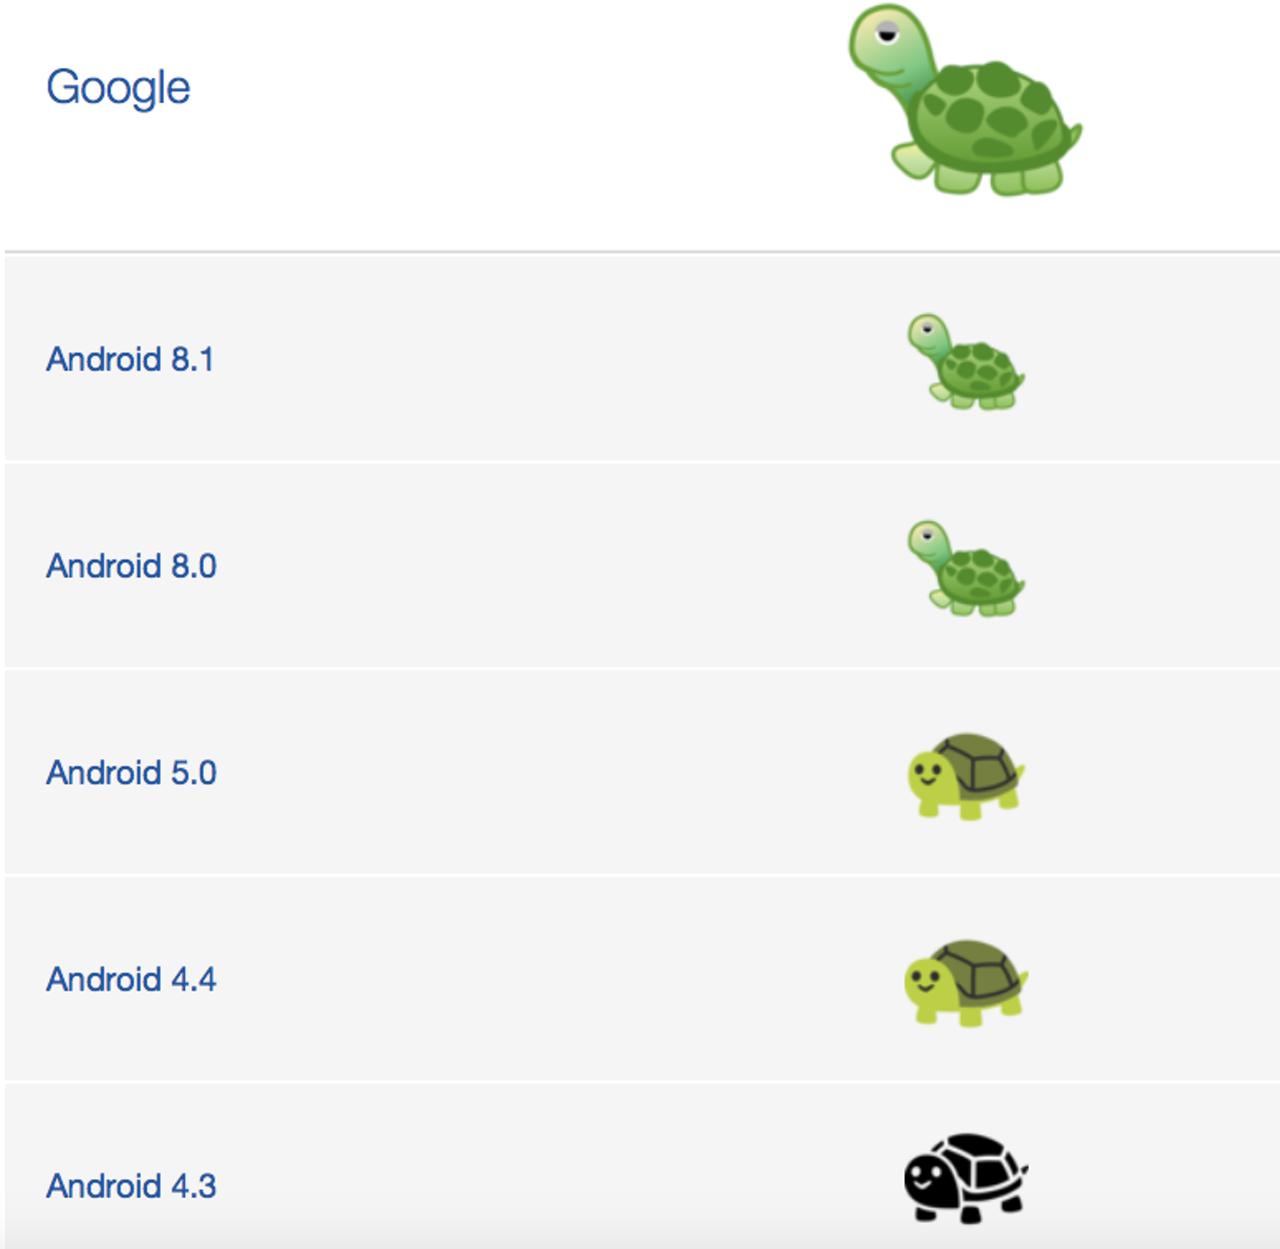 Why did the turtle stop smiling! (Note: the Android P emoji update to the turtle is not included in this image.)